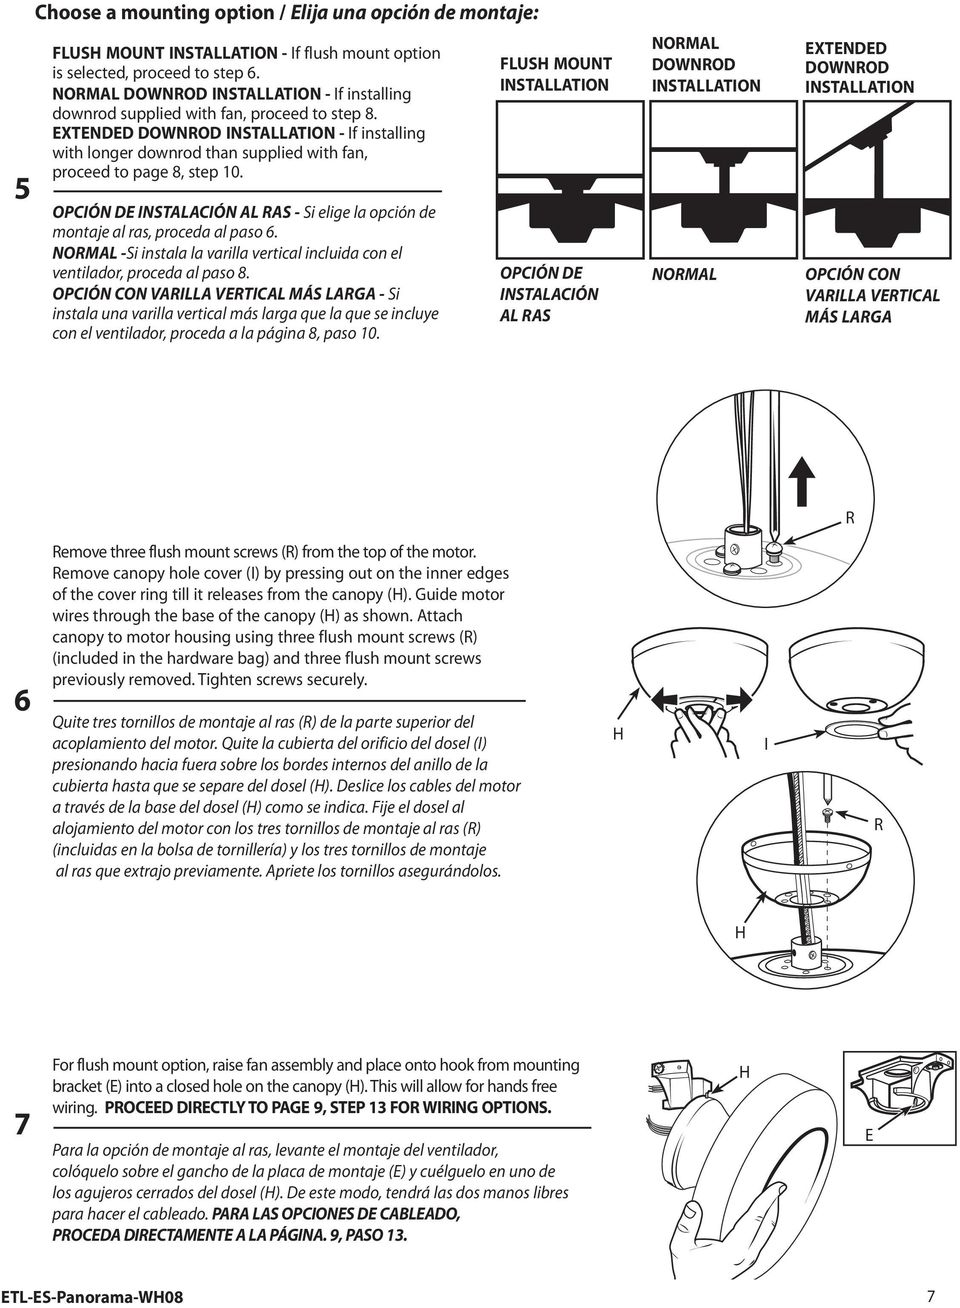 XTNDD DOWNROD INSTALLATION - If installing with longer downrod than supplied with fan, proceed to page 8, step 10.